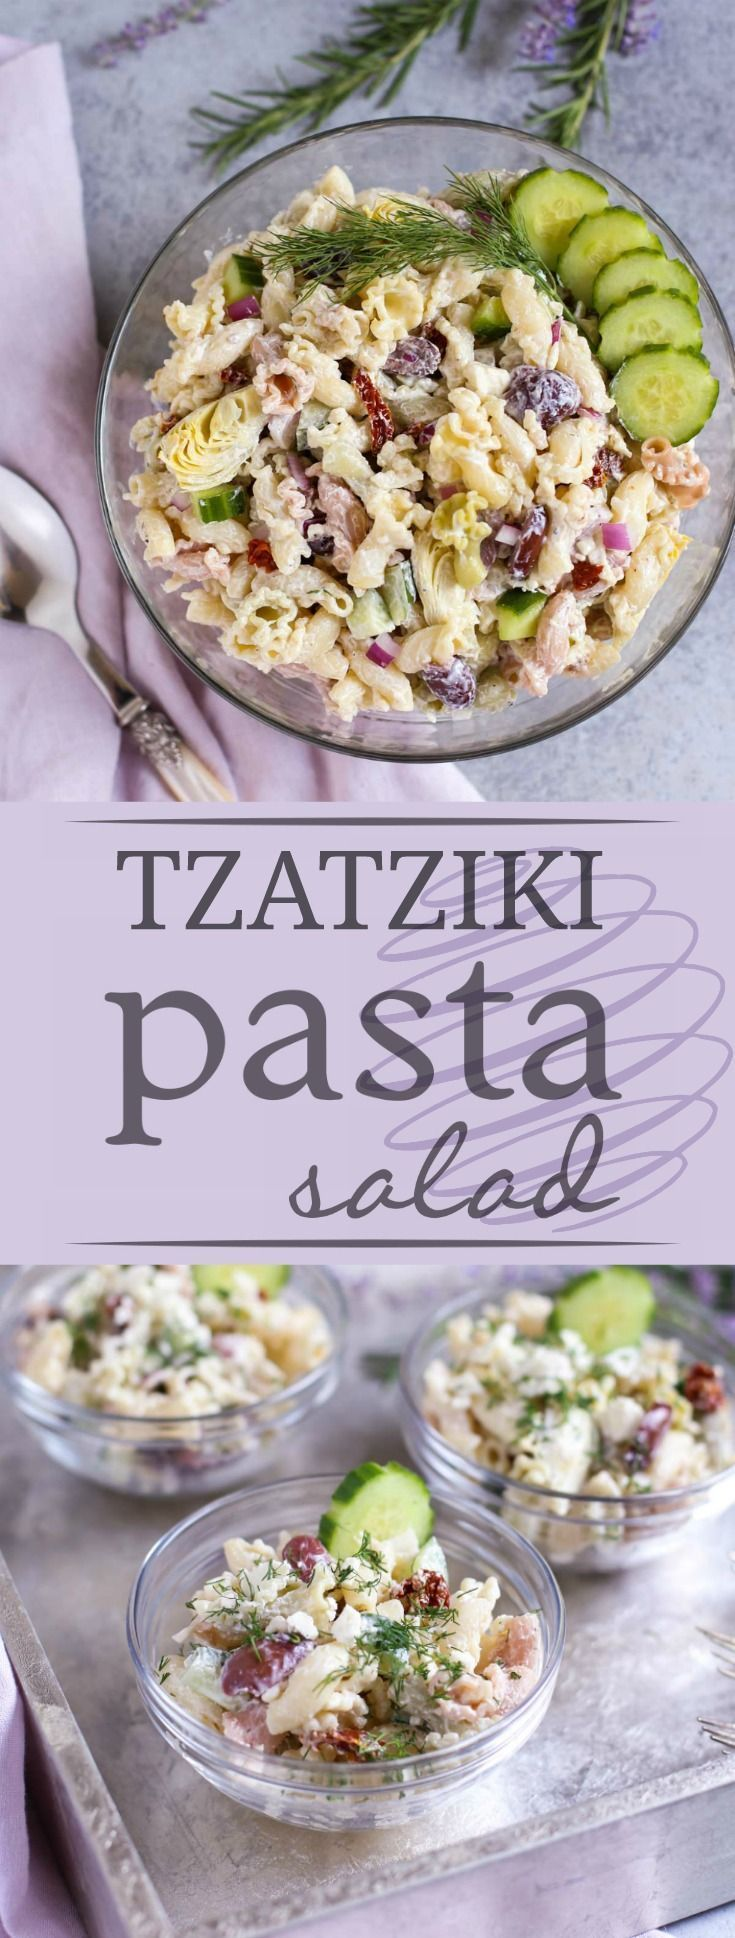 1000+ images about salads and dressings on Pinterest | Potato salad ...